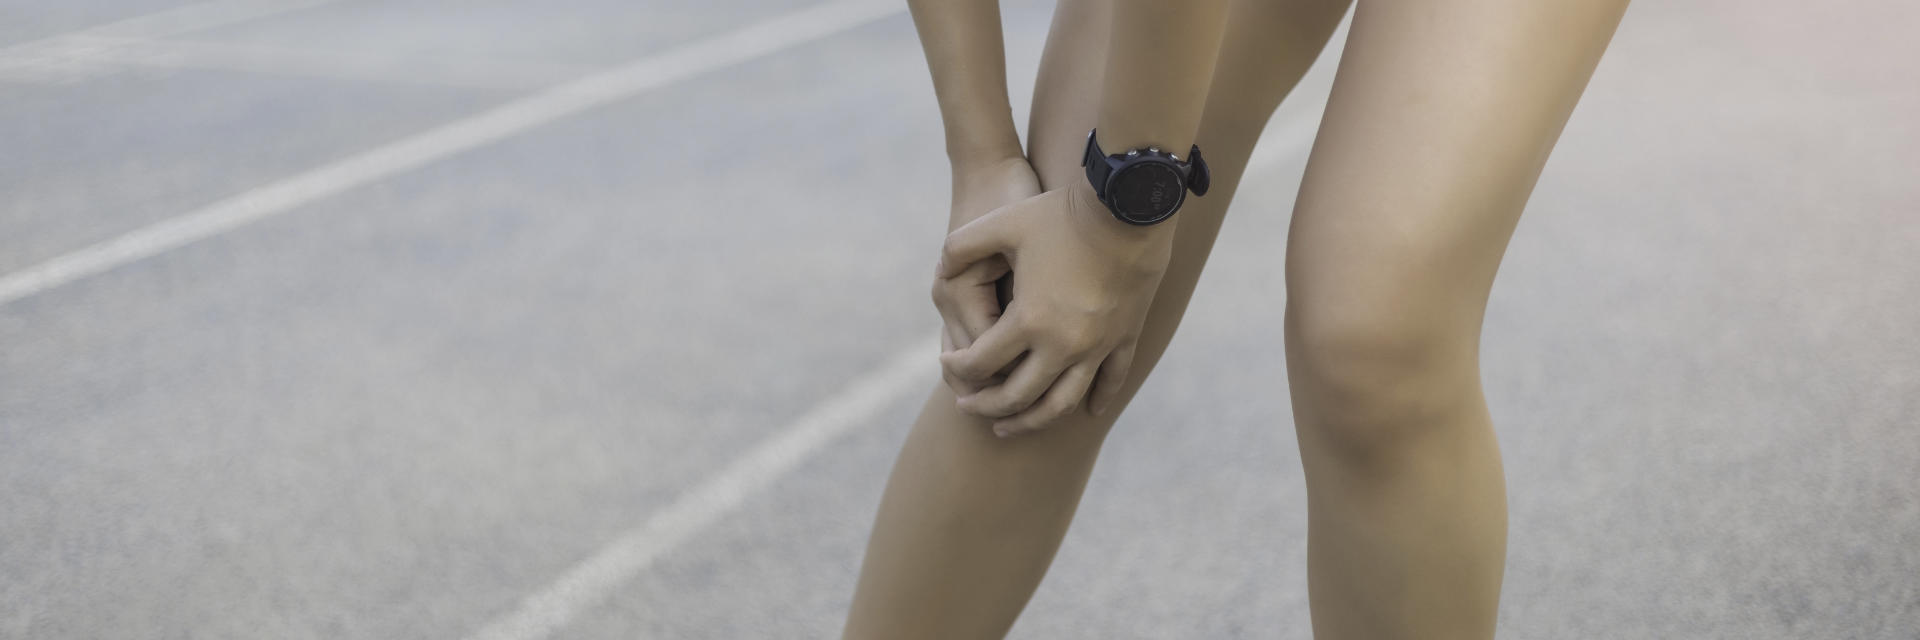 An sportsperson standing on the running track and touching the painful knee area.